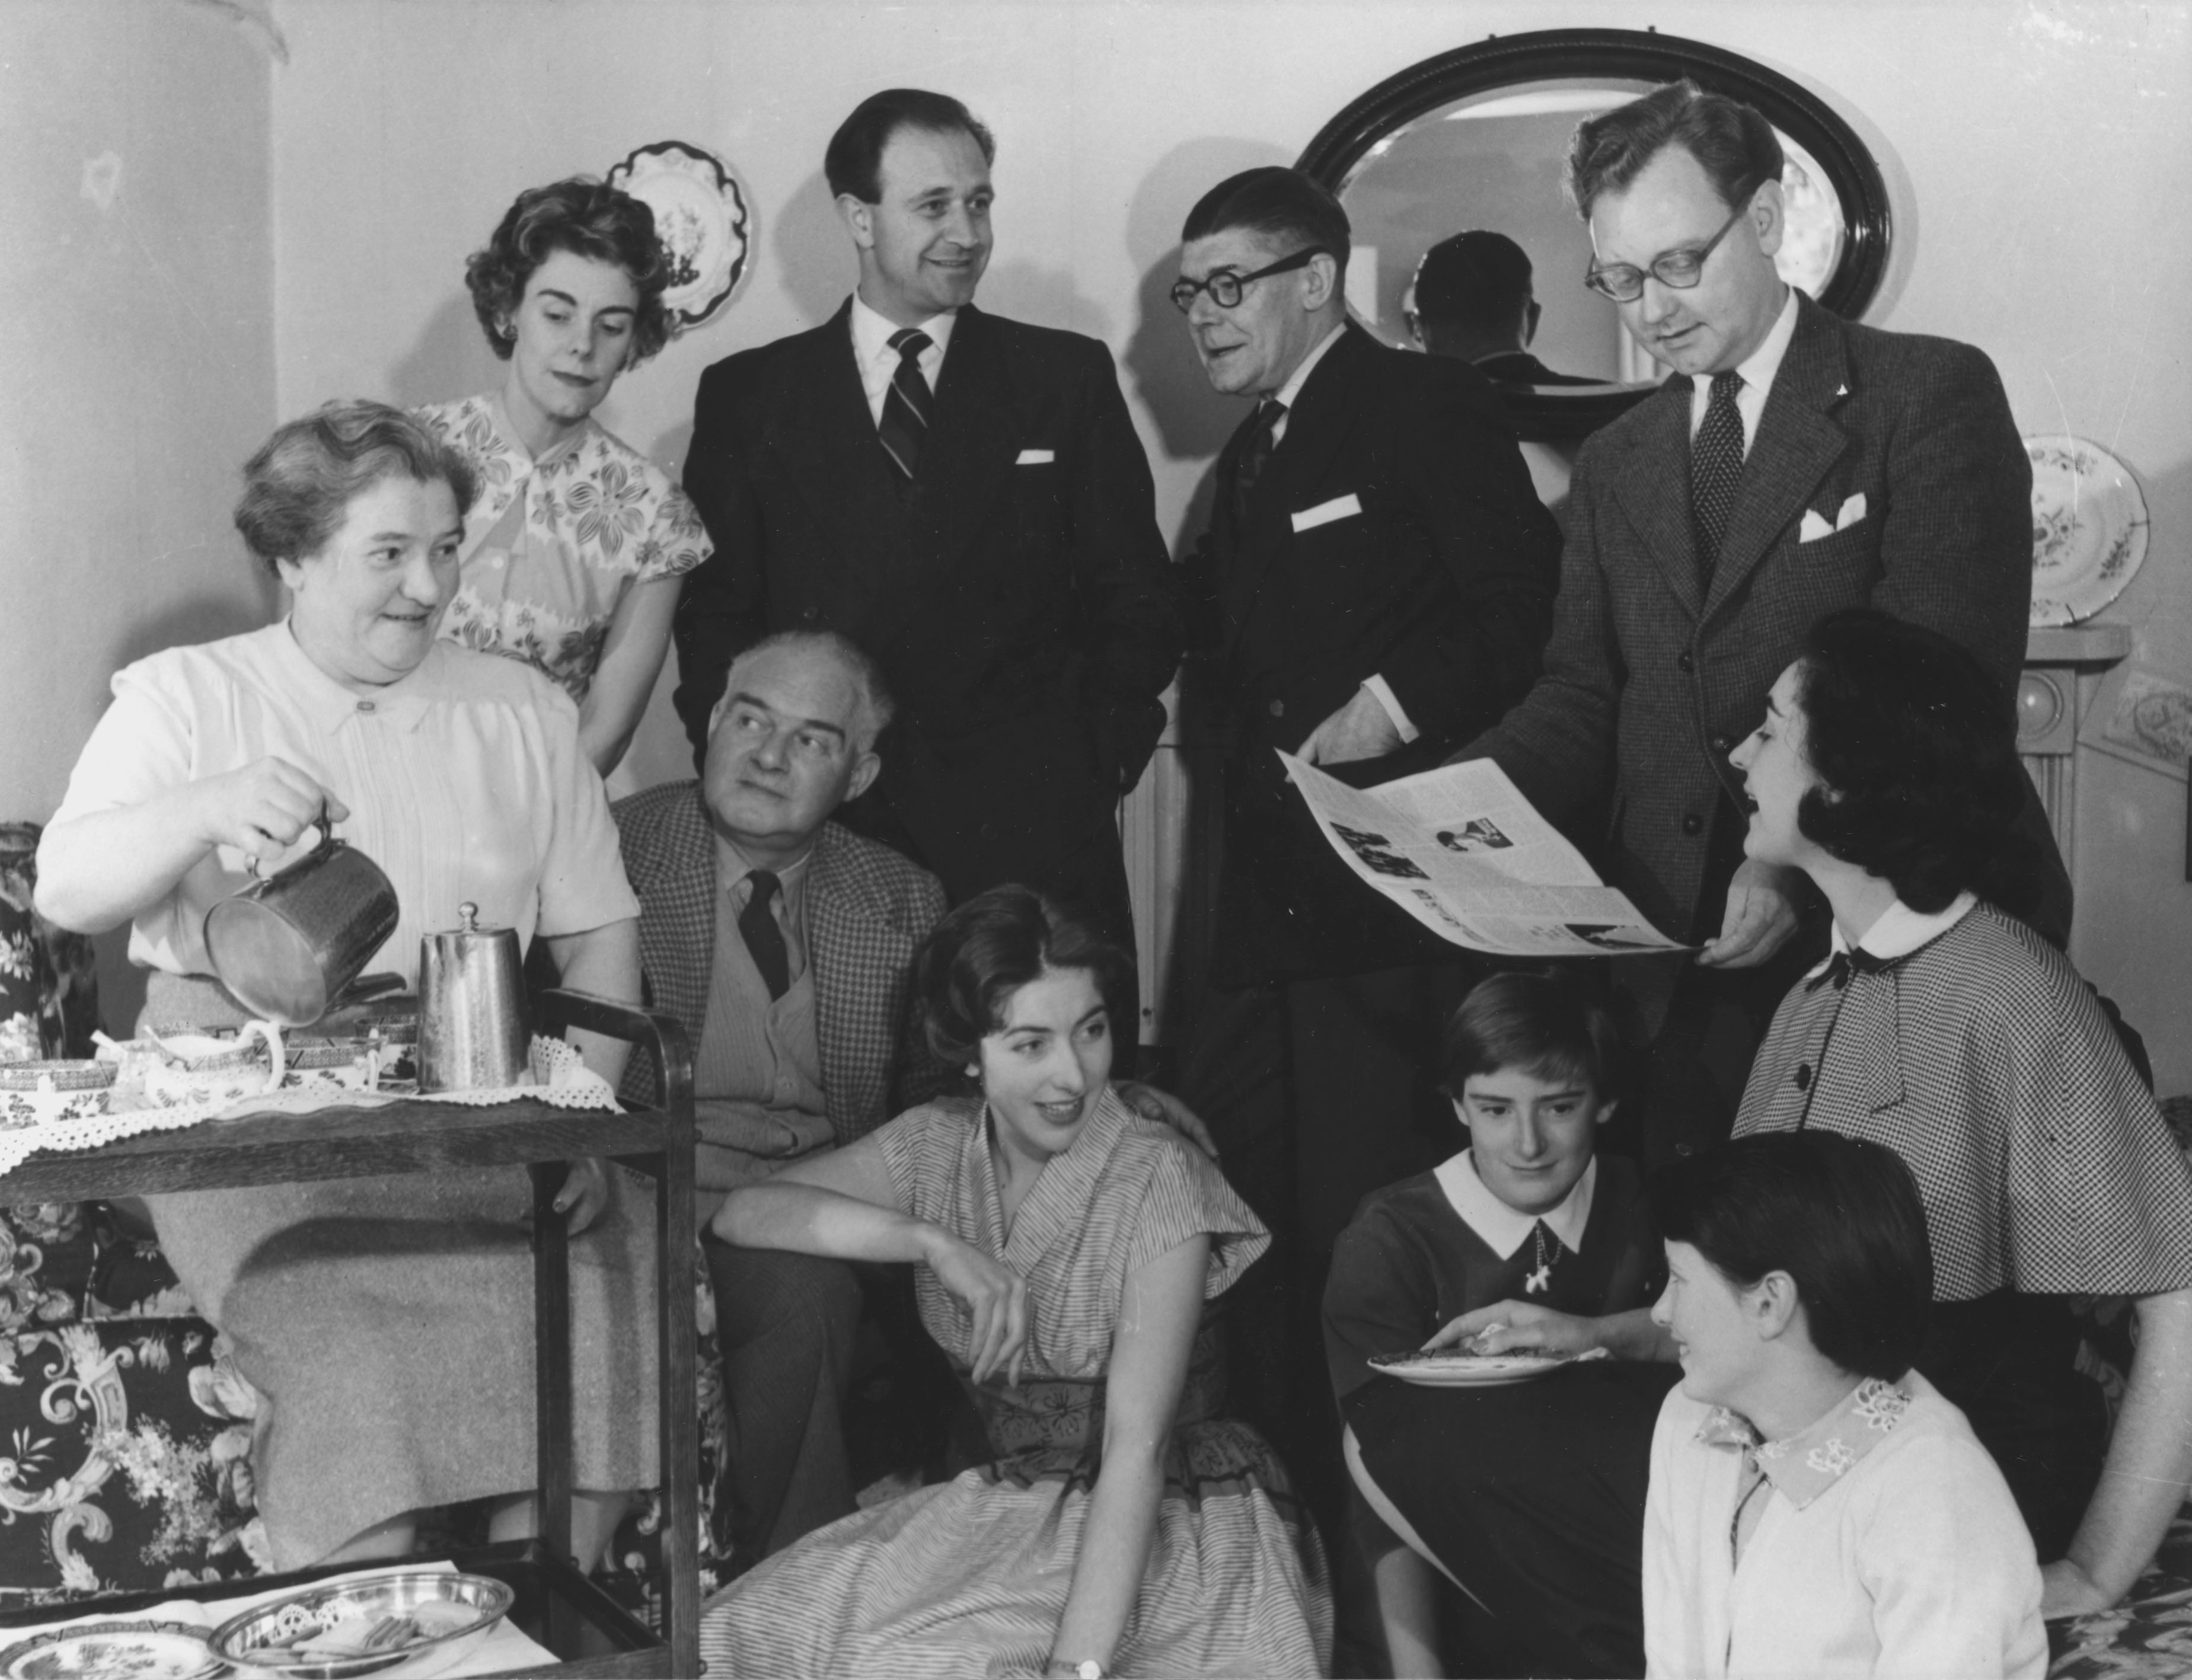 The Archers in 1958, Back row, l-r: Peggy Archer (June Spencer), Paul Johnson (Leslie Dunn), Jack Archer (Denis Folwell), Philip Archer (Norman Painting) Front row l-r: Mrs (Doris) Archer (Gwen Berryman), Dan Archer (Harry Oakes), Christine Johnson (Lesley Saweard), Jennifer Archer (unidentified actress), Lillian Archer (unidentified actress), Jill Archer (Patricia Greene)